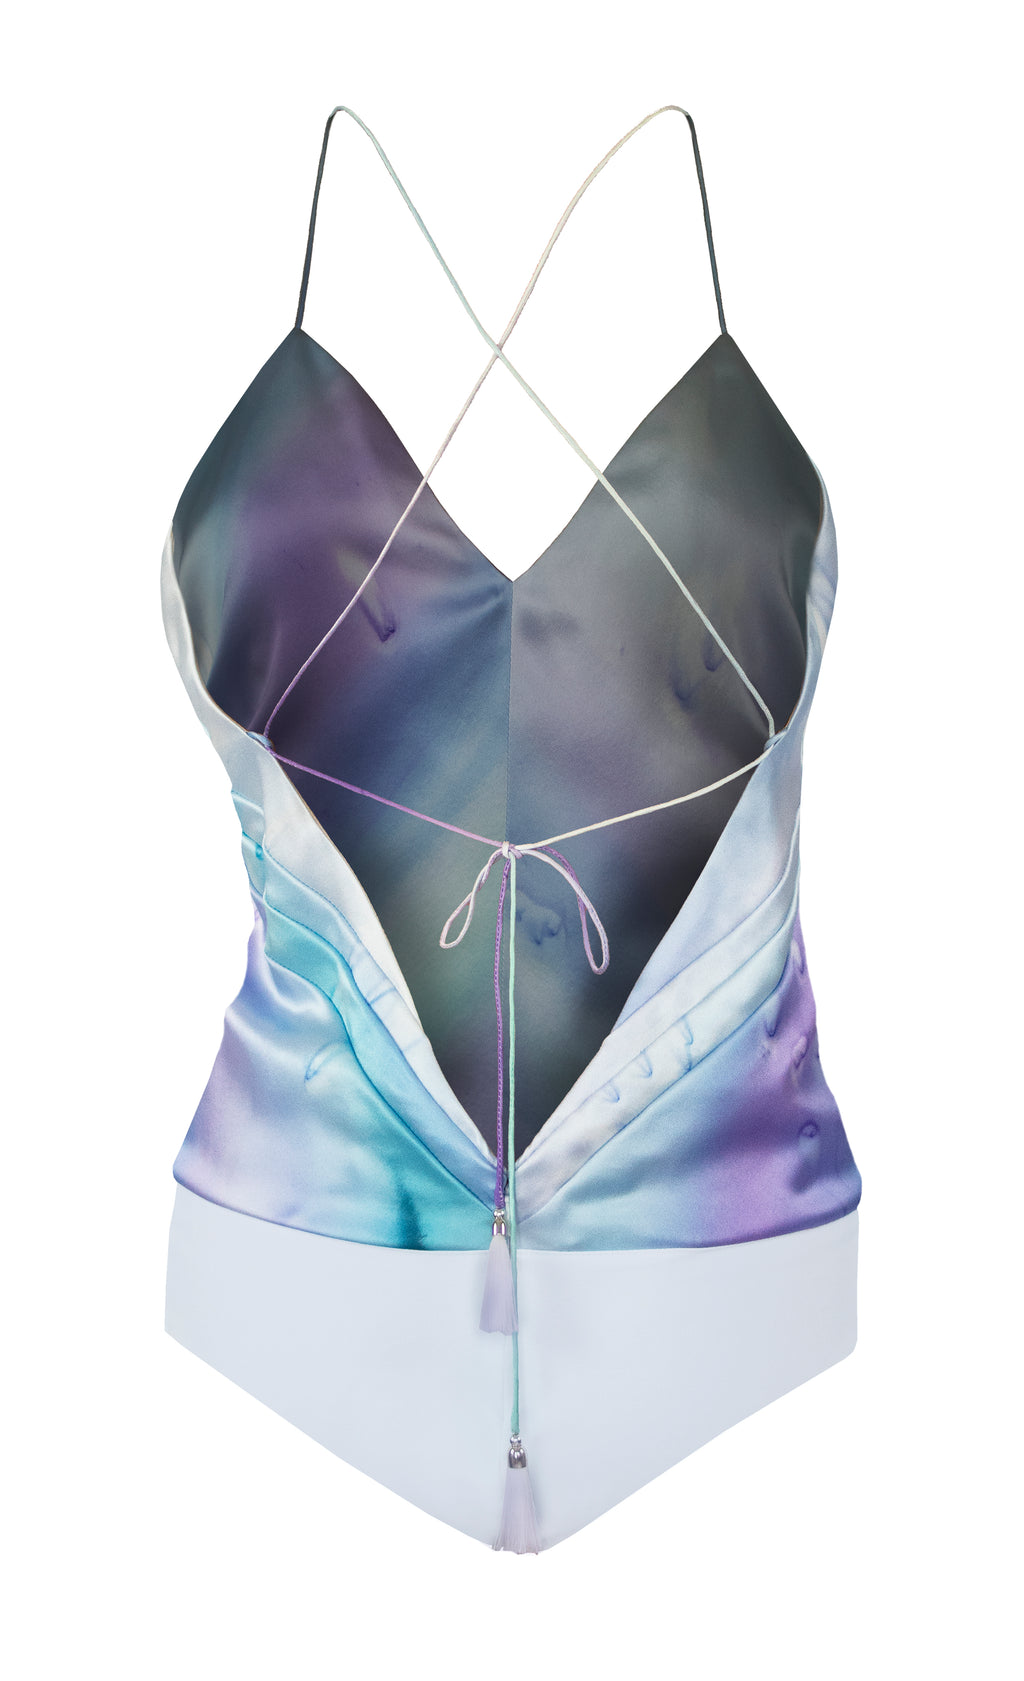 Nymeria French-dye Salt Painted Silk Set - KxLNewYork